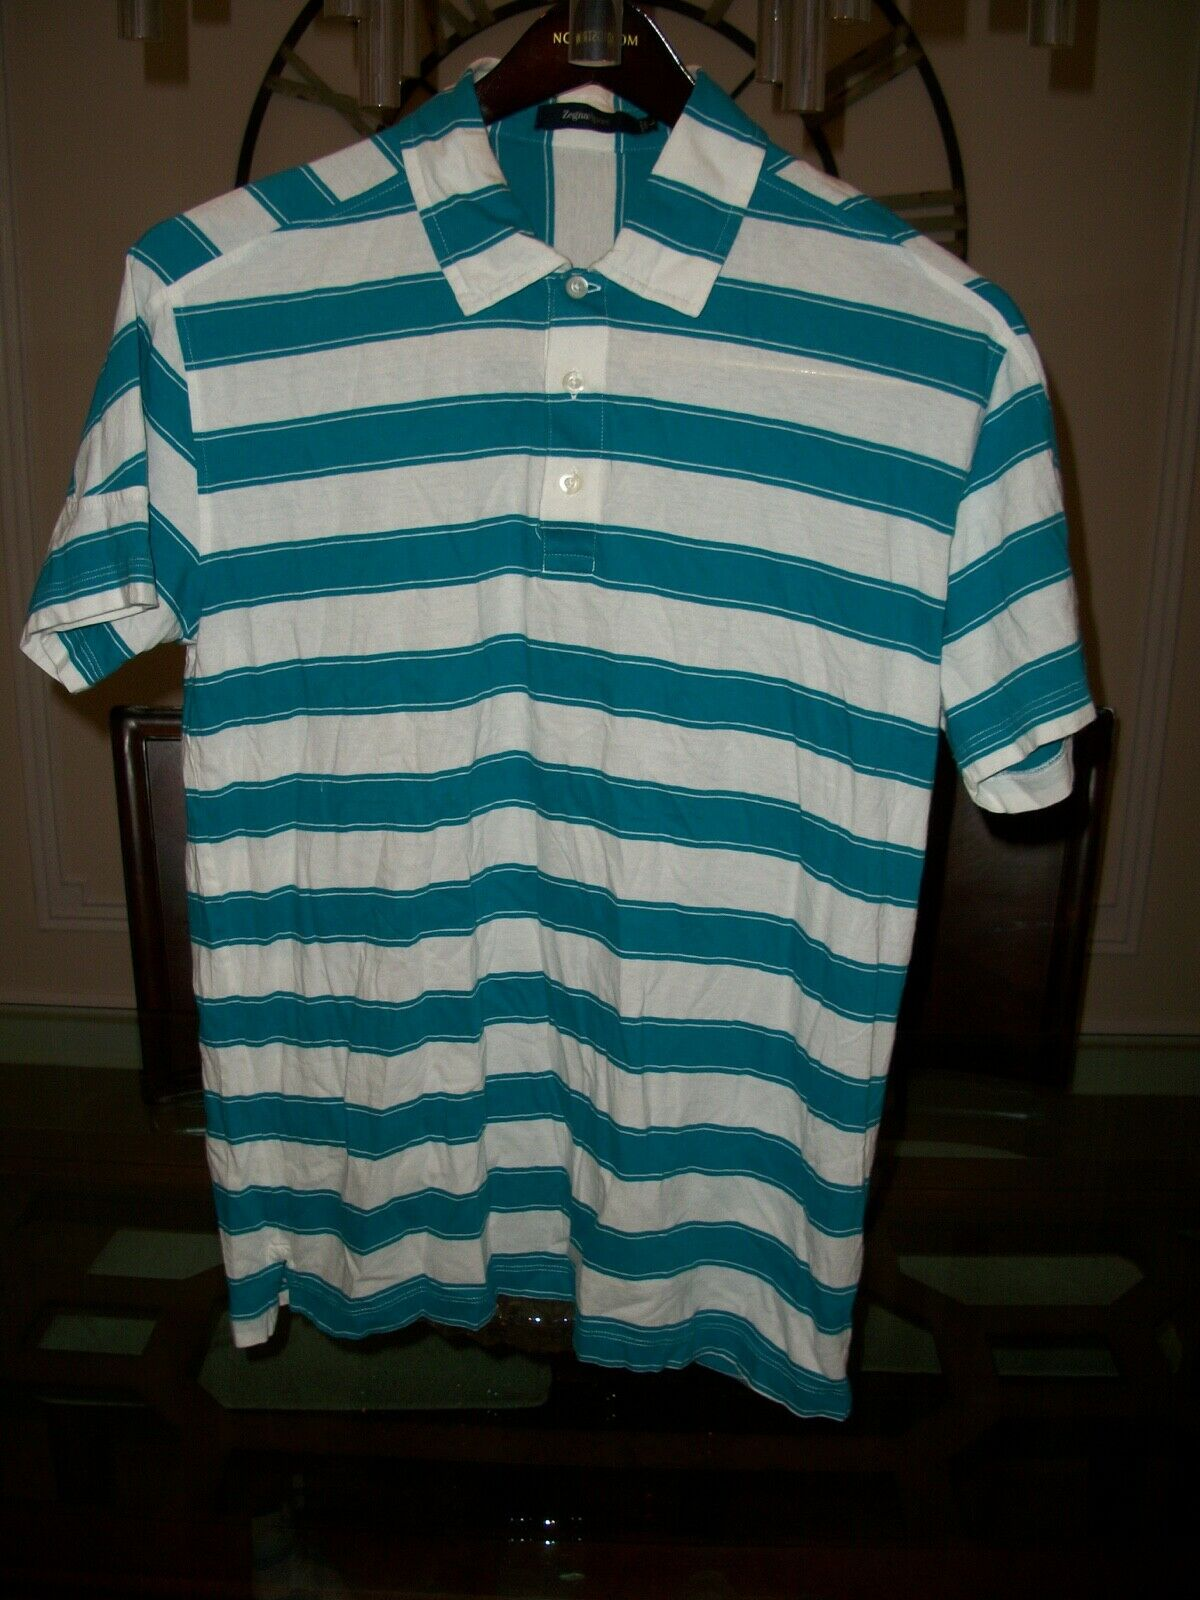 46b65634a7 Used ZEGNA SPORT teal white striped cotton s s polo shirt size L. We're ...